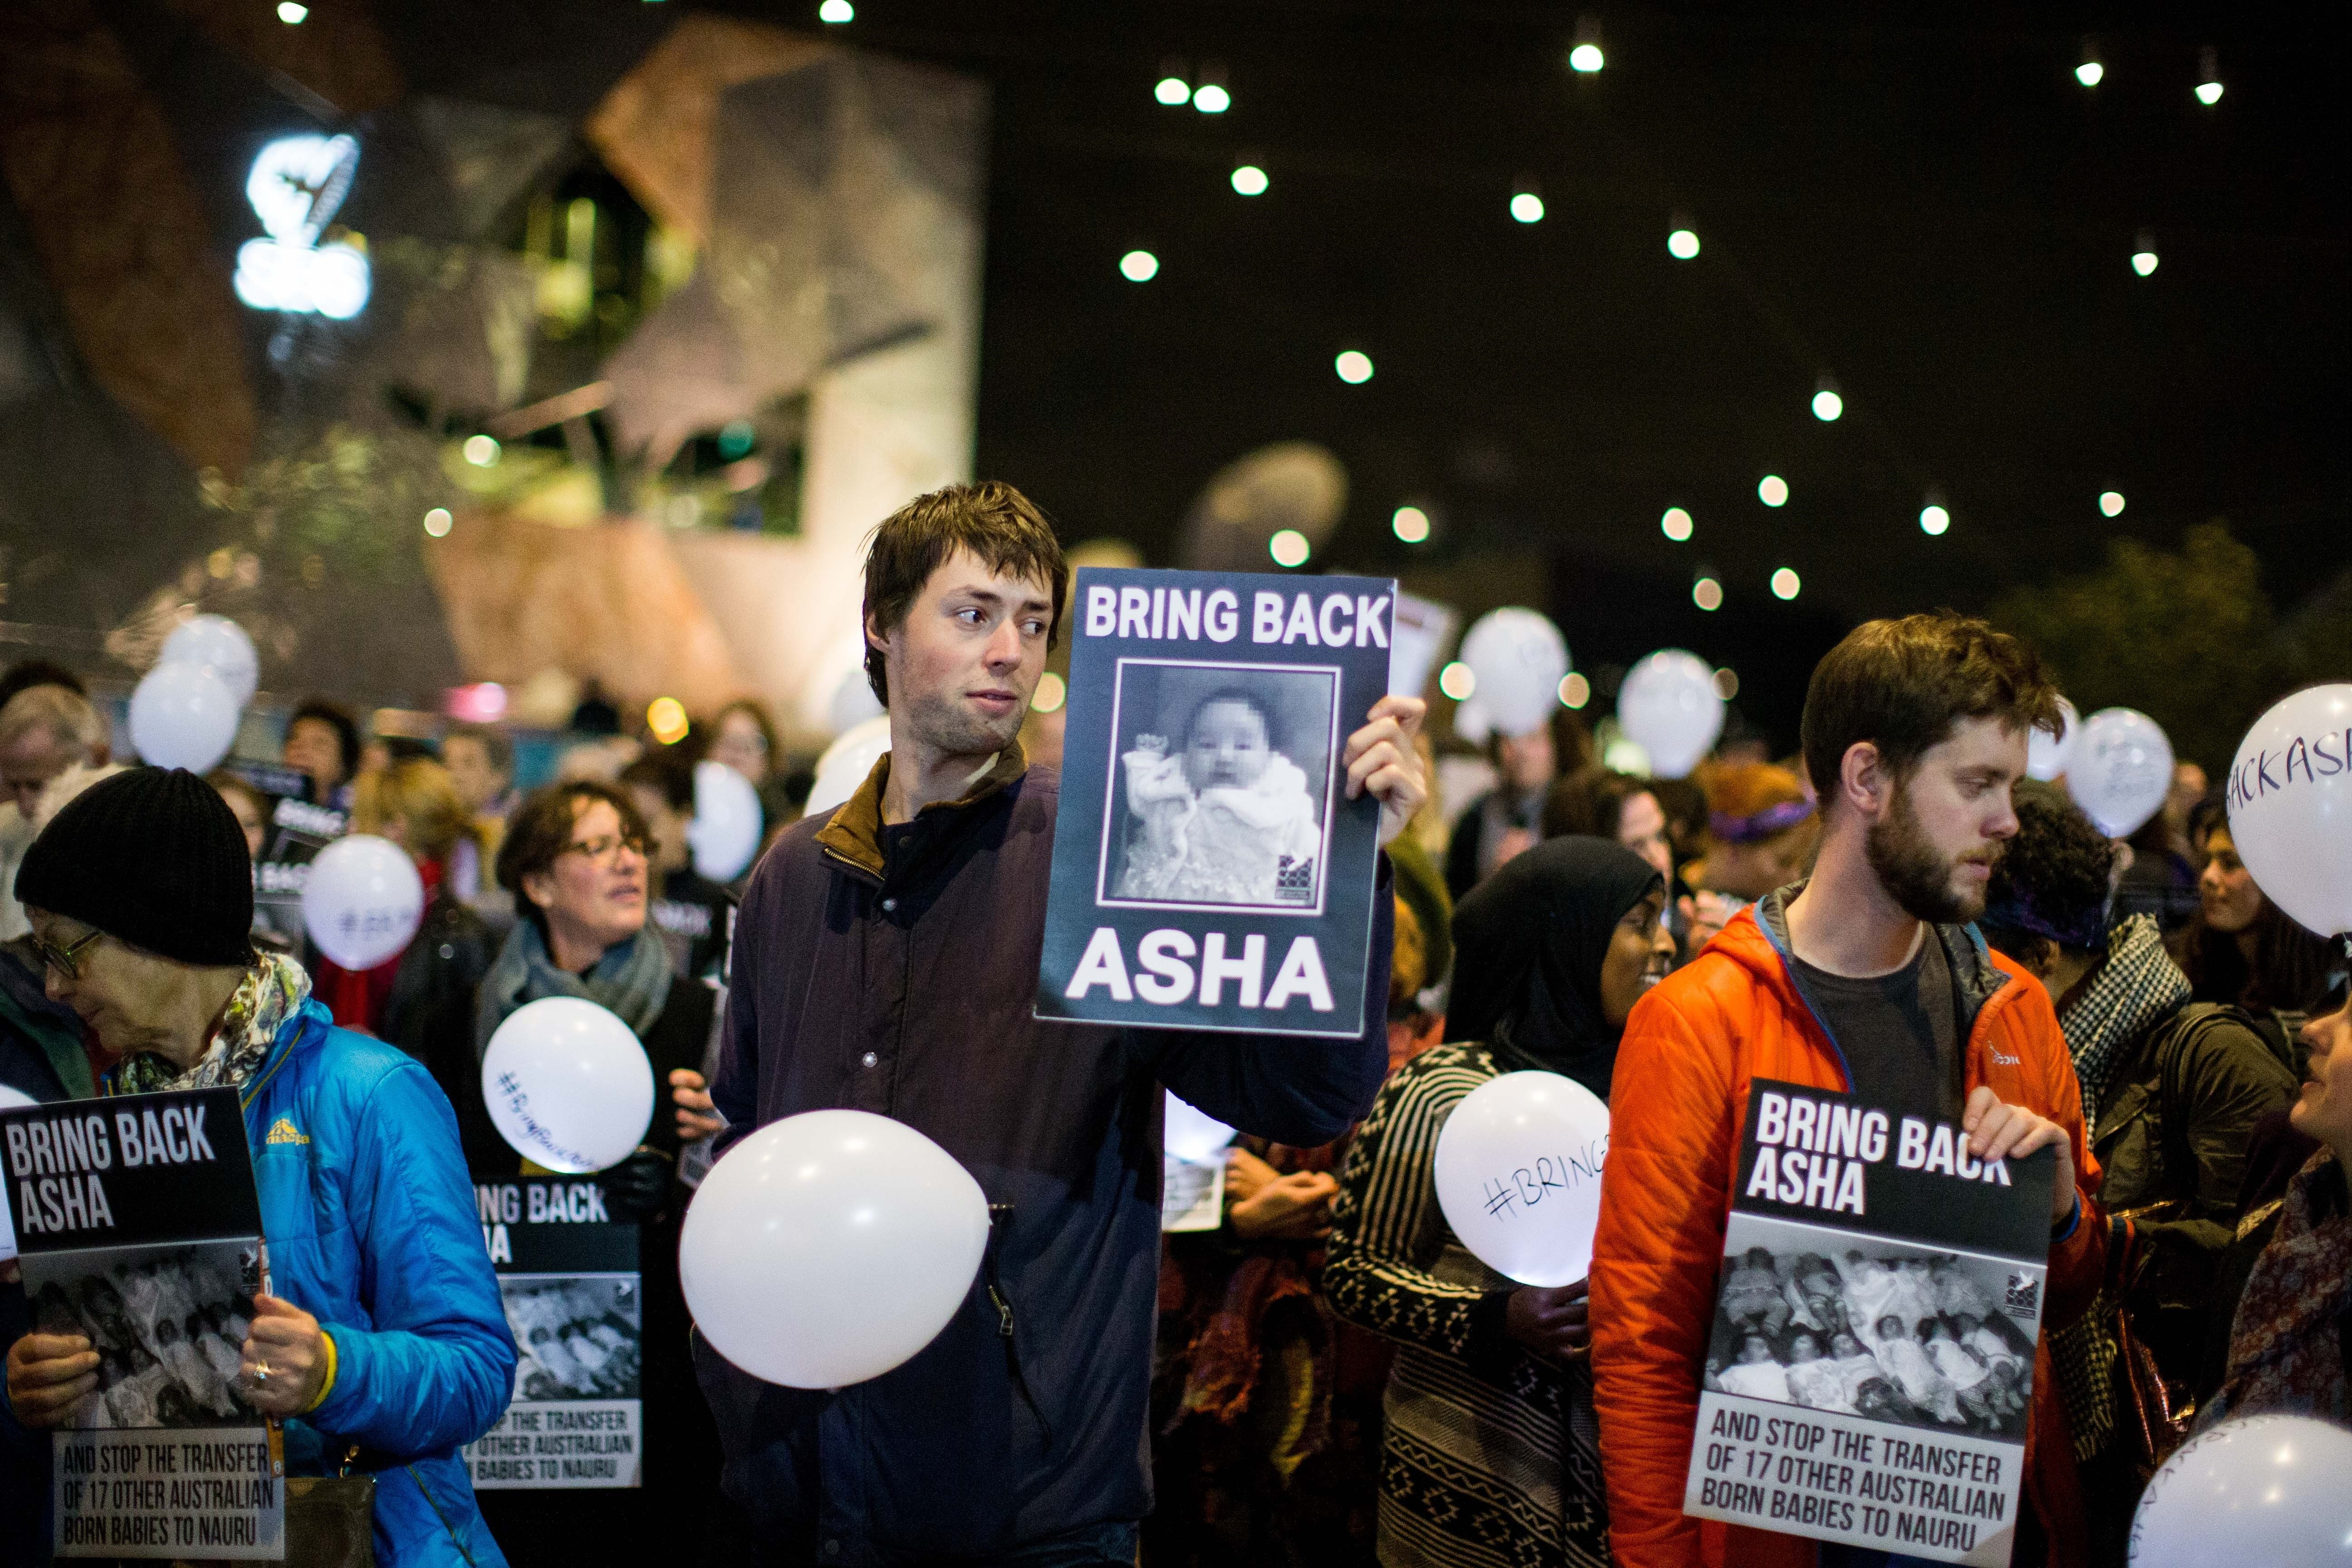 Protestors at a rally at Melbourne's Federation Square to protest the deportation of 5 month old refugee 'Asha' to Nauru, in Melbourne, Australia on June 25, 2015.